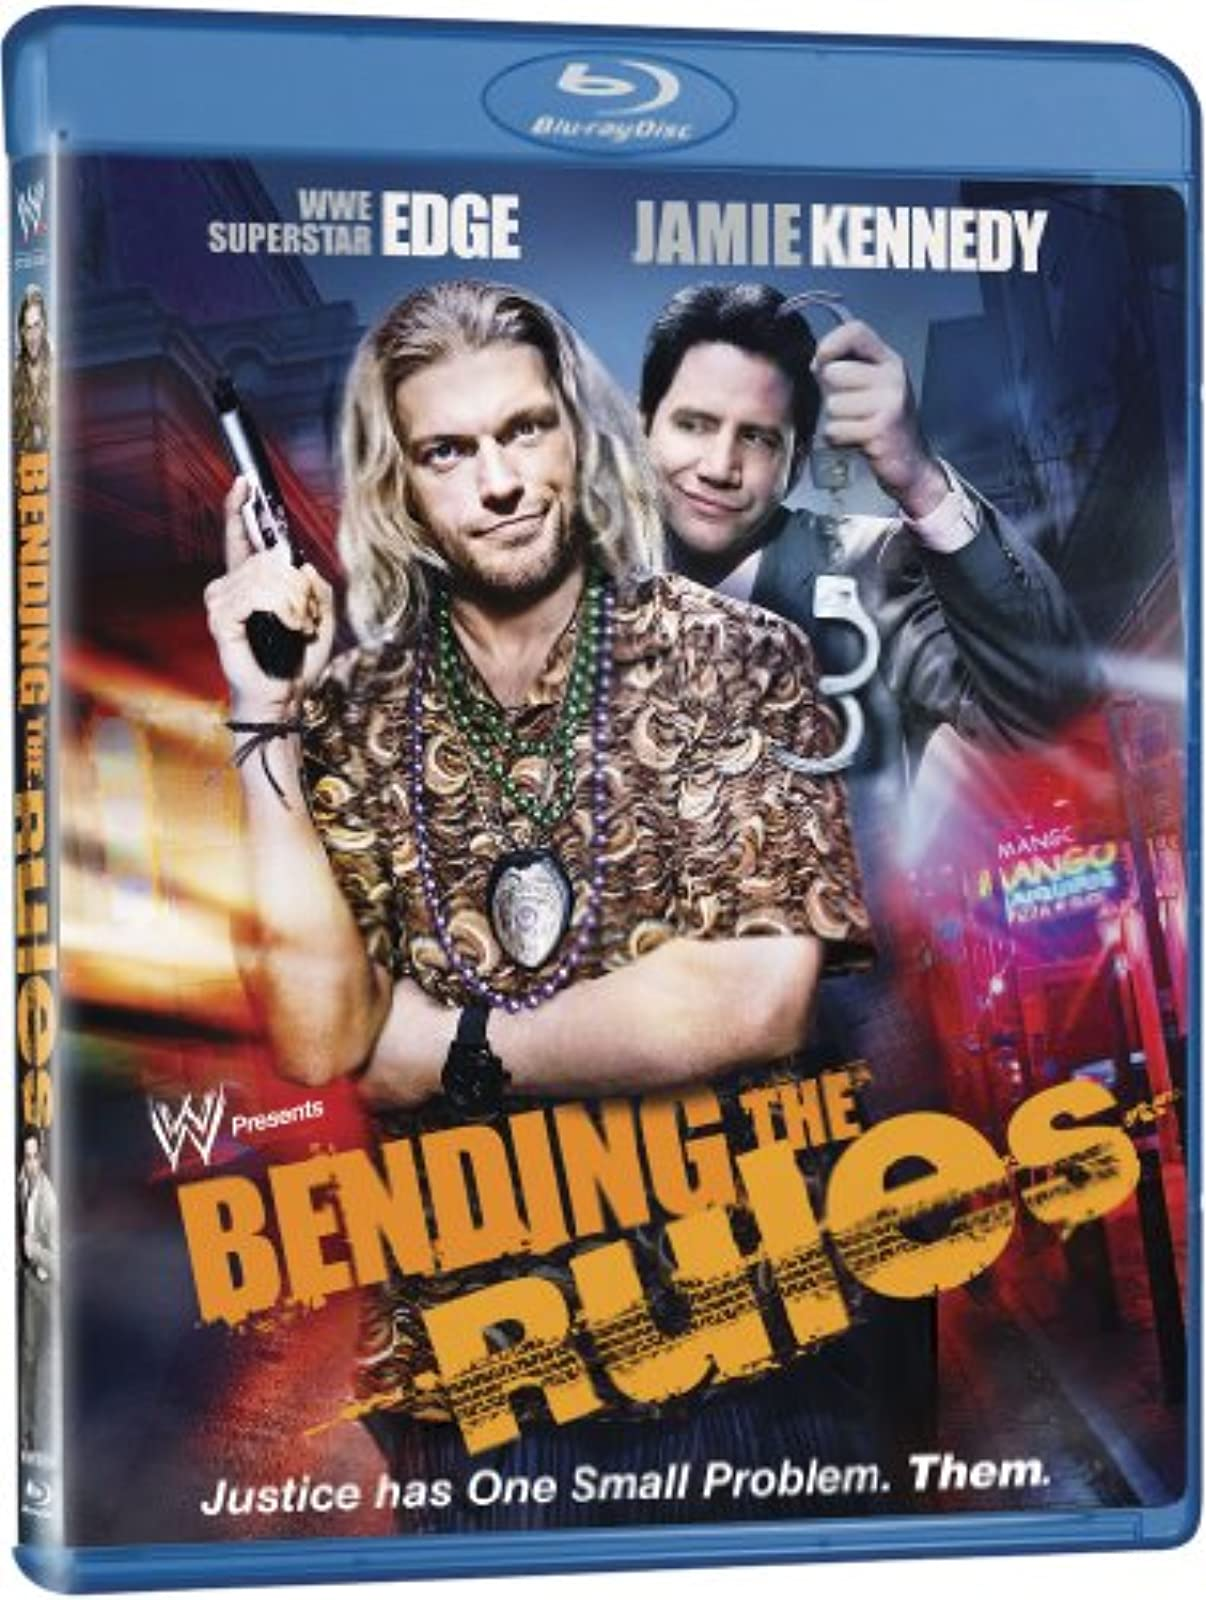 Bending The Rules On Blu-Ray Comedy